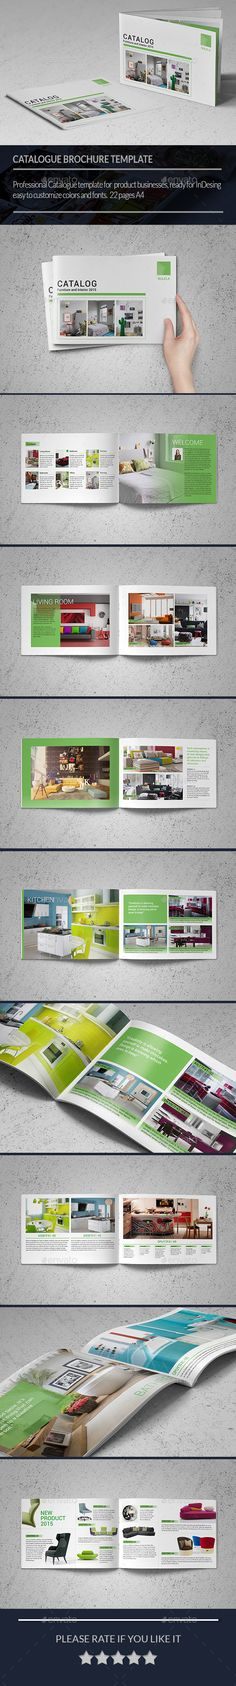 Product Catalogs / Brochure Template #design #brochure Download: http://graphicriver.net/item/product-catalogs-brochure-/11454866?ref=ksioks